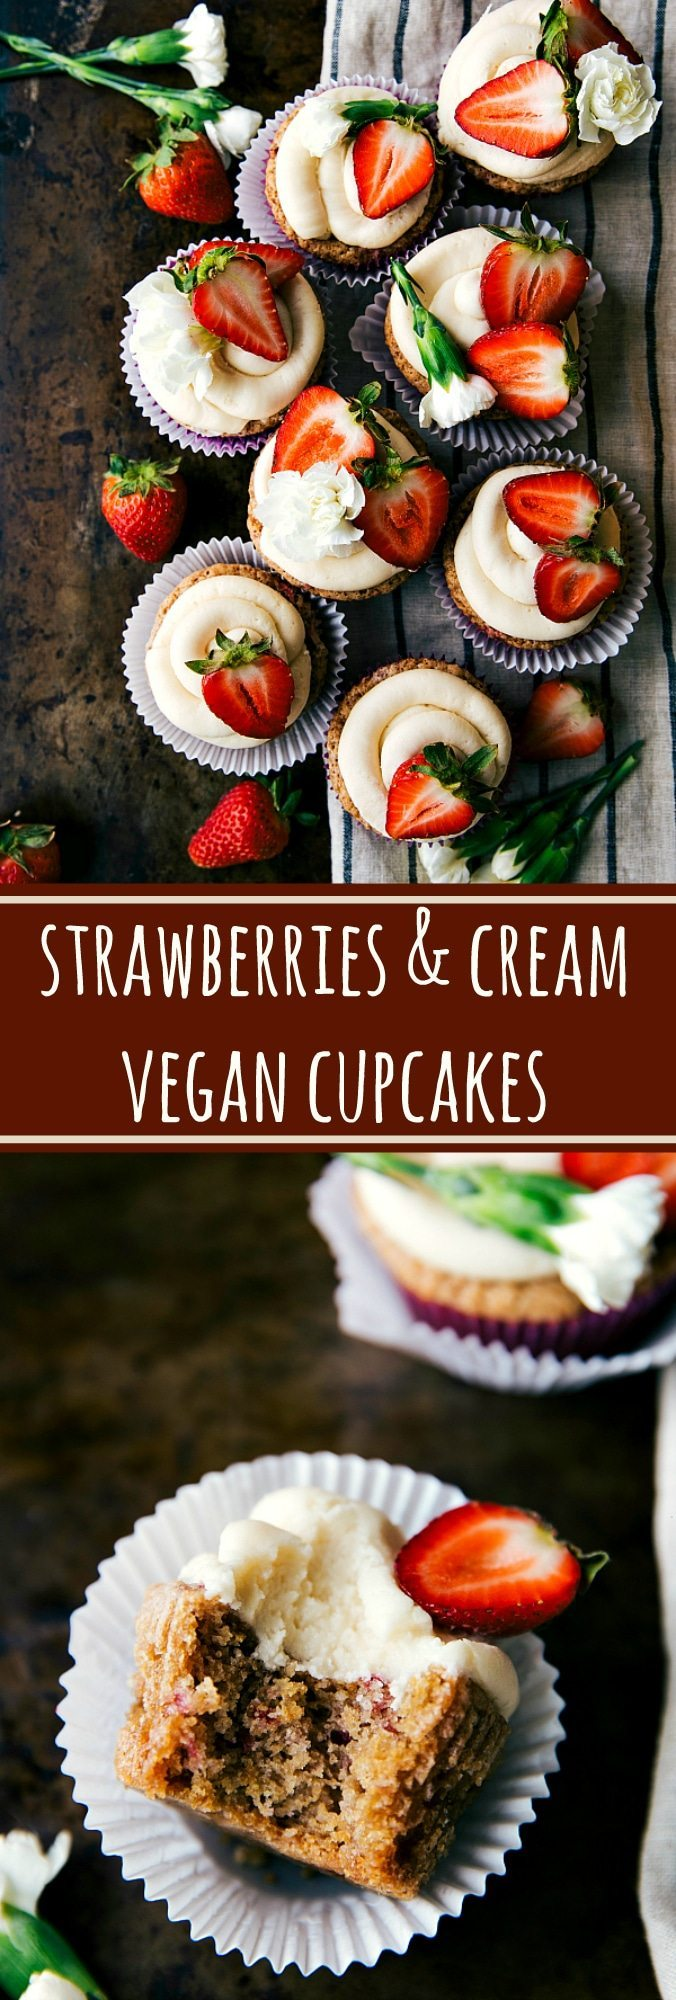 Delicious strawberries and cream vegan cupcakes